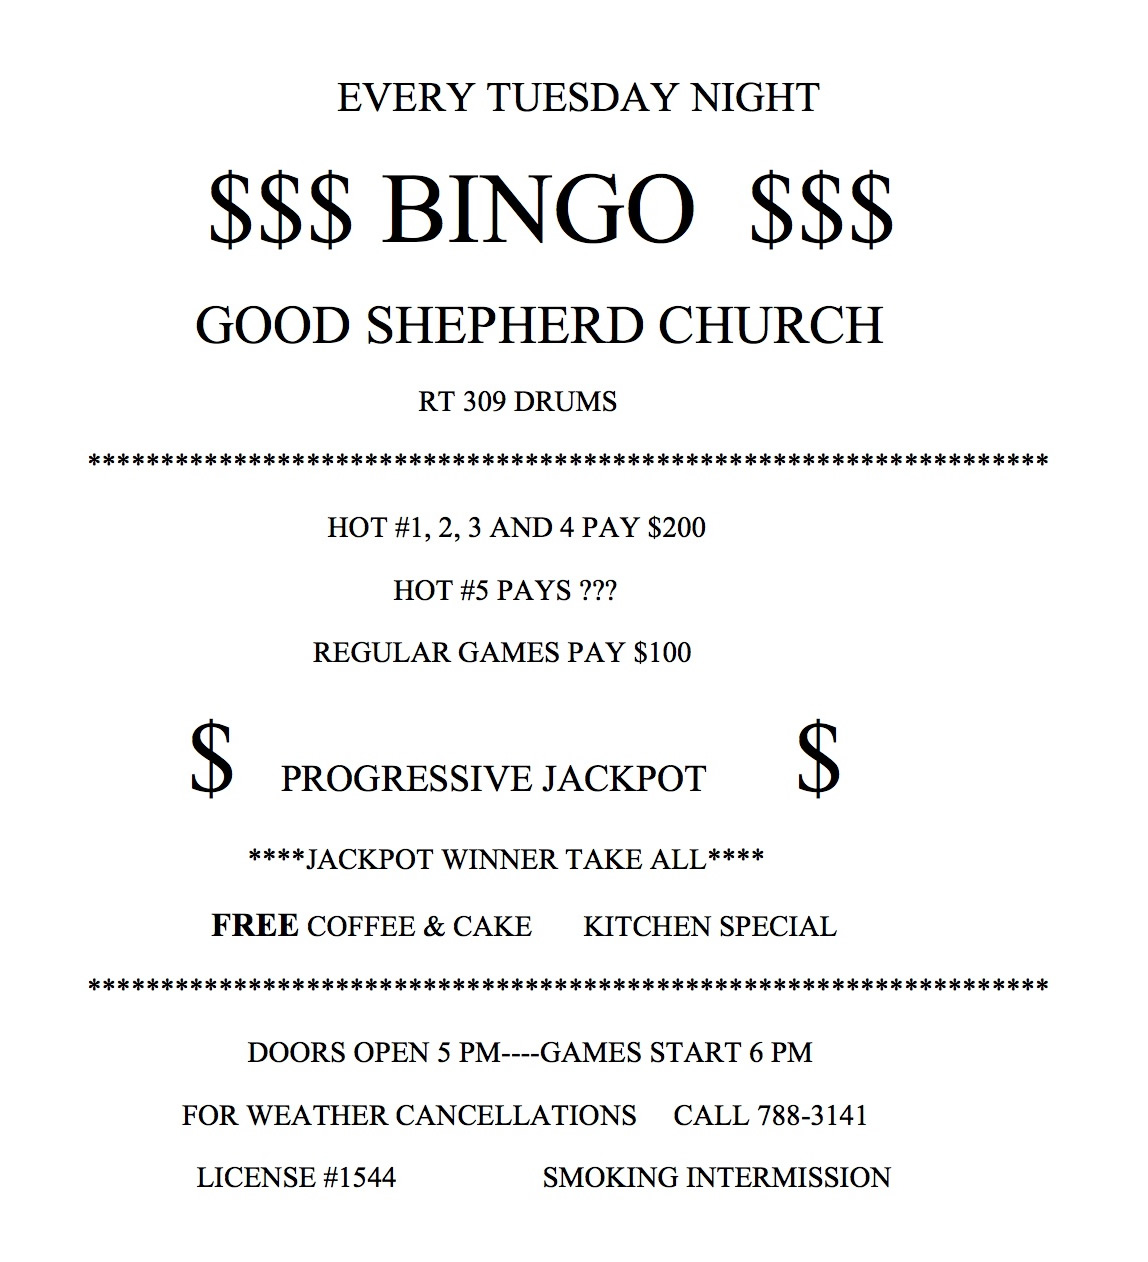 Bingo every Tuesday evening at Good Shepherd. Doors open at 5:00 PM, games start at 6:00 PM.